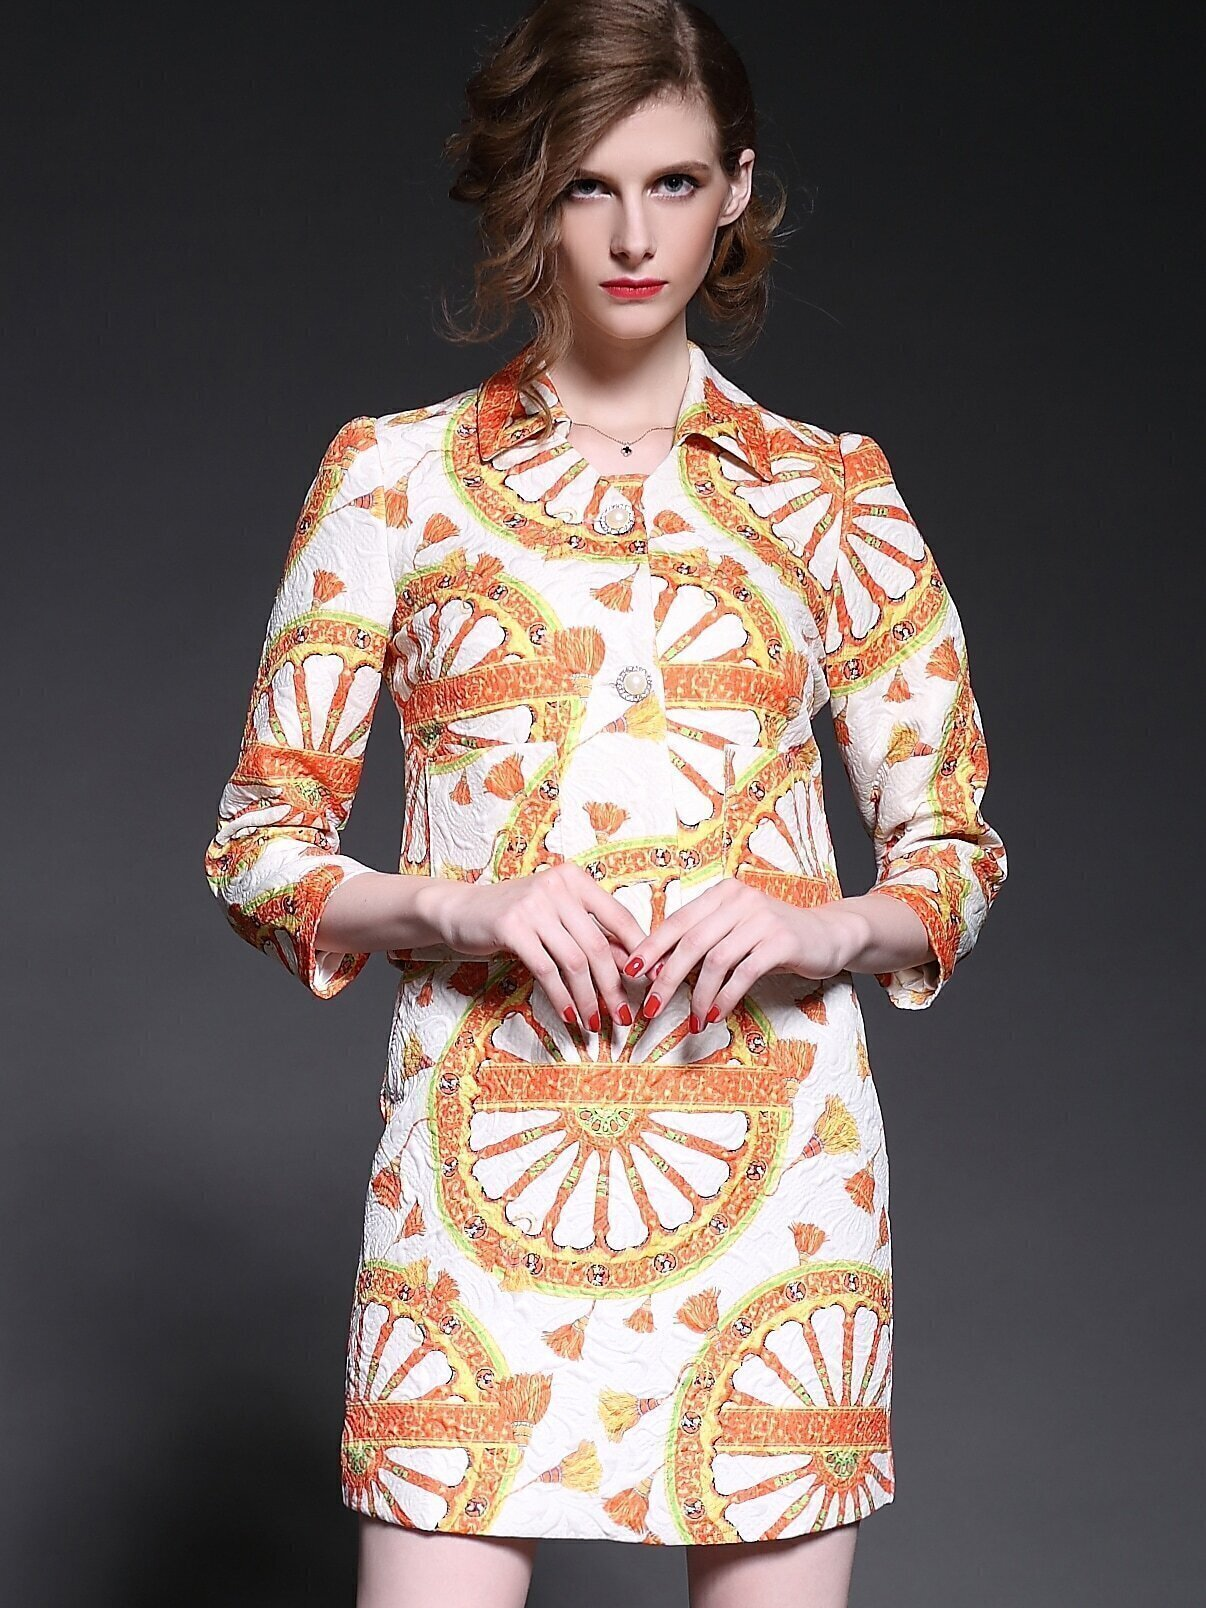 Orange Lapel Length Sleeve Jacquard Two Pieces Dress